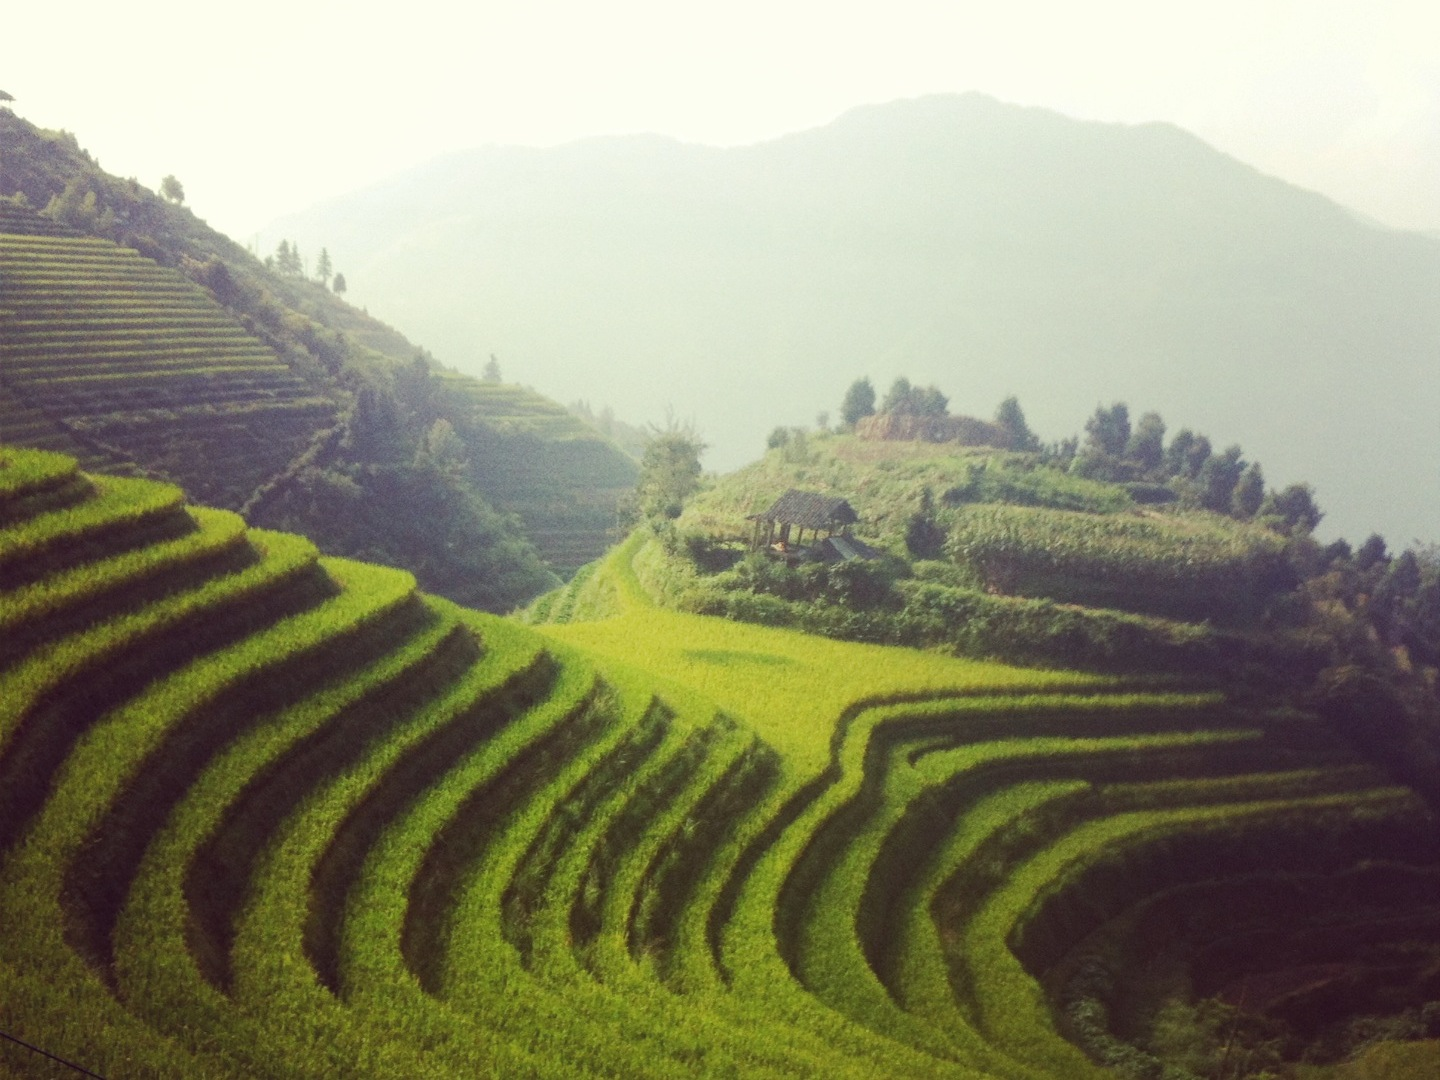 Longji Rice Terraces | Photo by Wilson Carletti (All Rights Reserved)